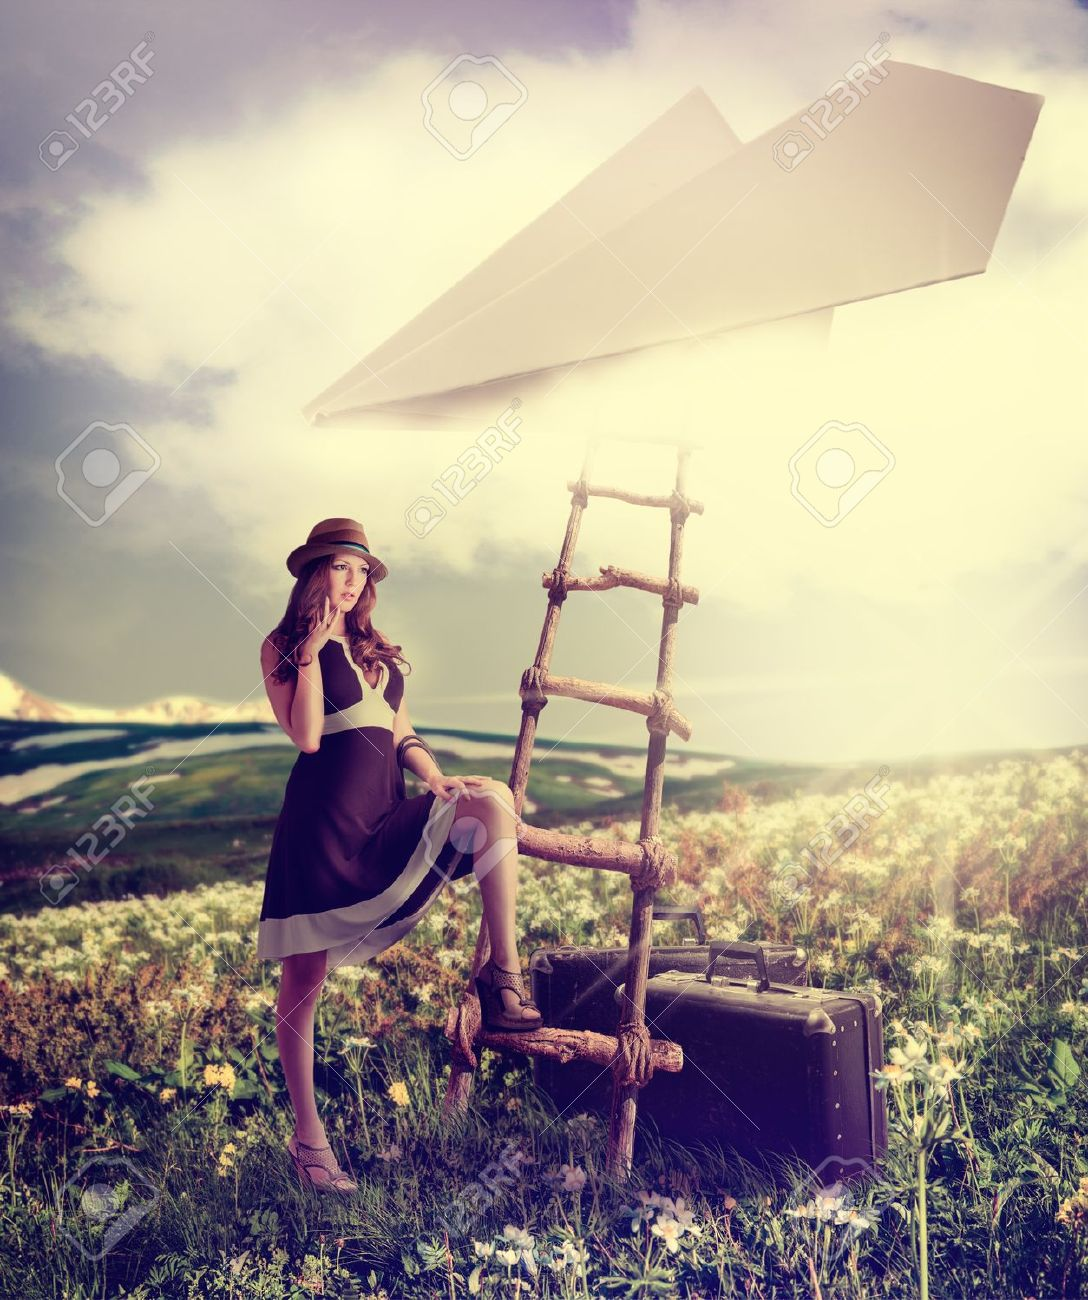 Concept - dreaming about travel.Beautiful woman with suitcases standing near the ladder to the paper plane in the clouds Stock Photo - 20438630